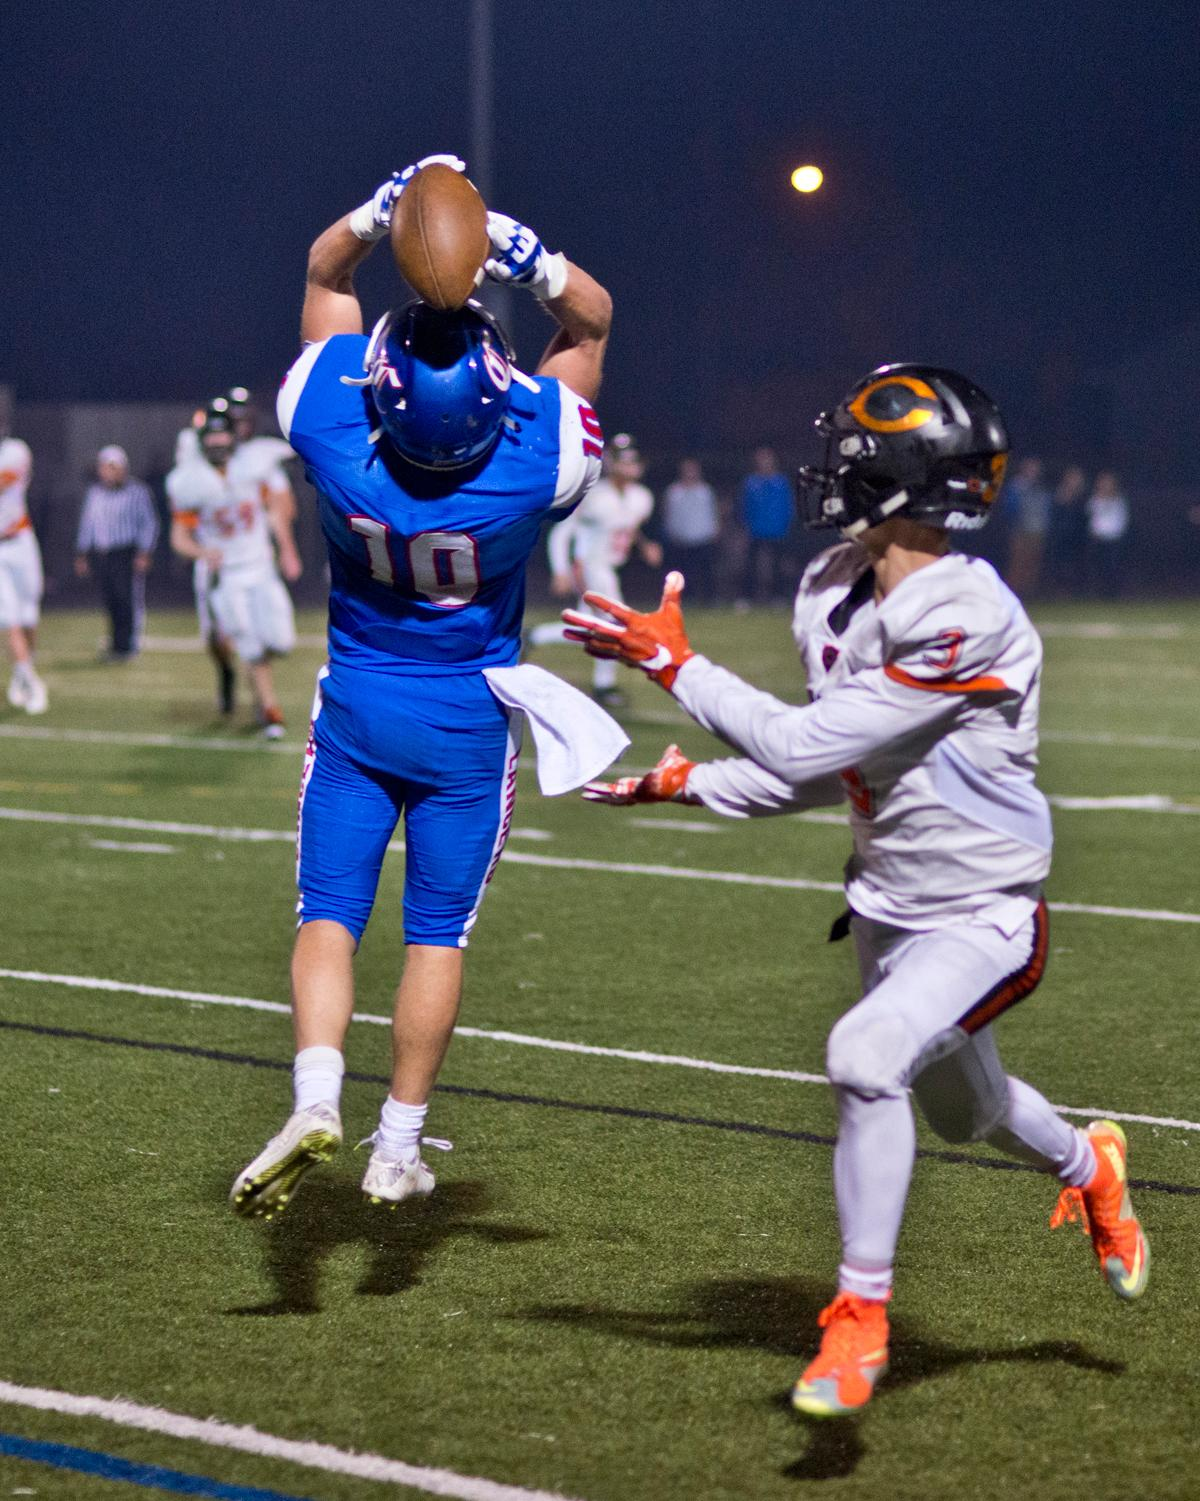 Churchill Lancers defensive back Tyson Bennion (#10) intercepts a pass intended for Crater Comets wide receiver Bailee Robles (#3). Churchill defeated Crater 63-21 on Friday at their homecoming game. Churchill remains undefeated with a conference record of 9-0. Photo by Dan Morrison, Oregon News Lab